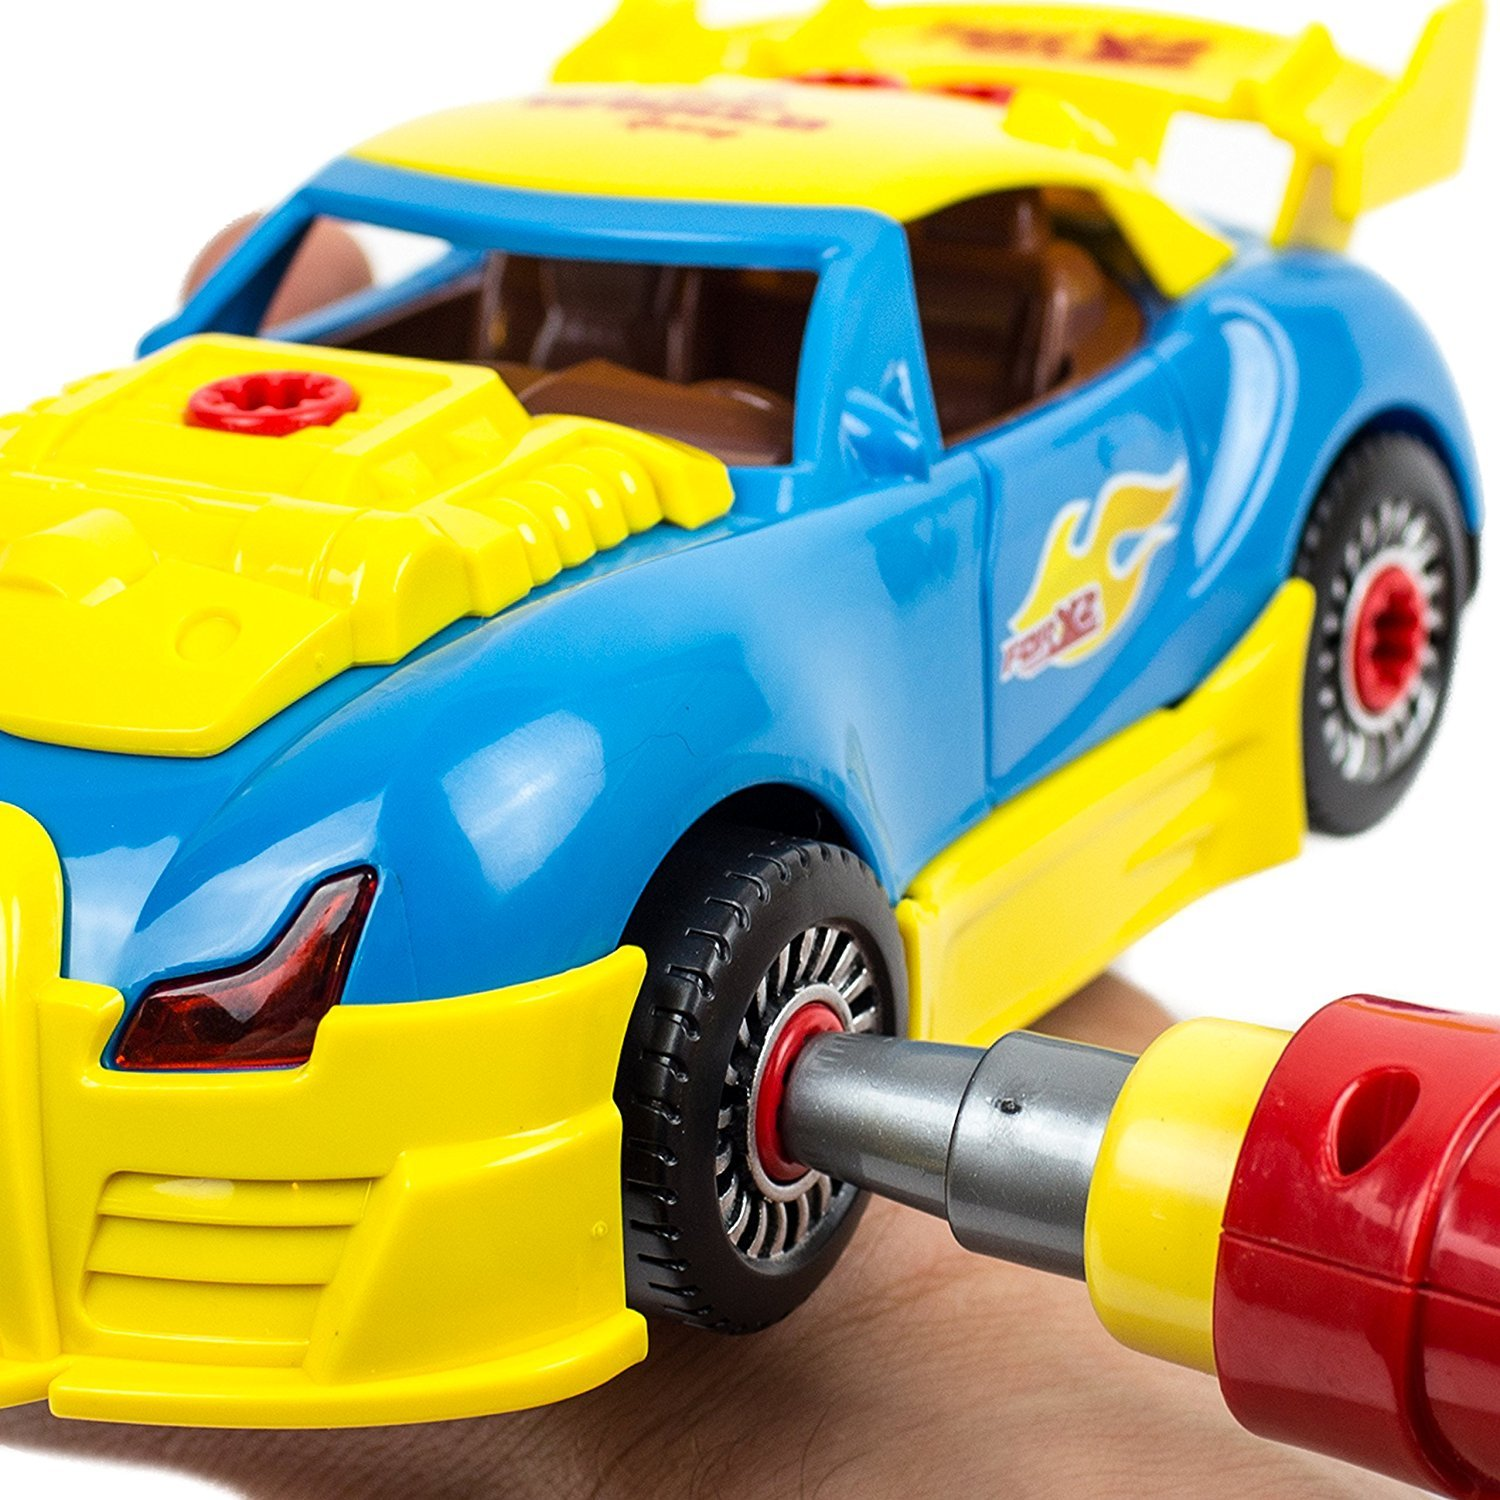 Mrfixit Race Car Toy Take A Part Battery Operated Quick Tip 16 Threeway Twoway Or Oneway Switch Misterfixit Drill Set With Lights And Sounds Toys Games